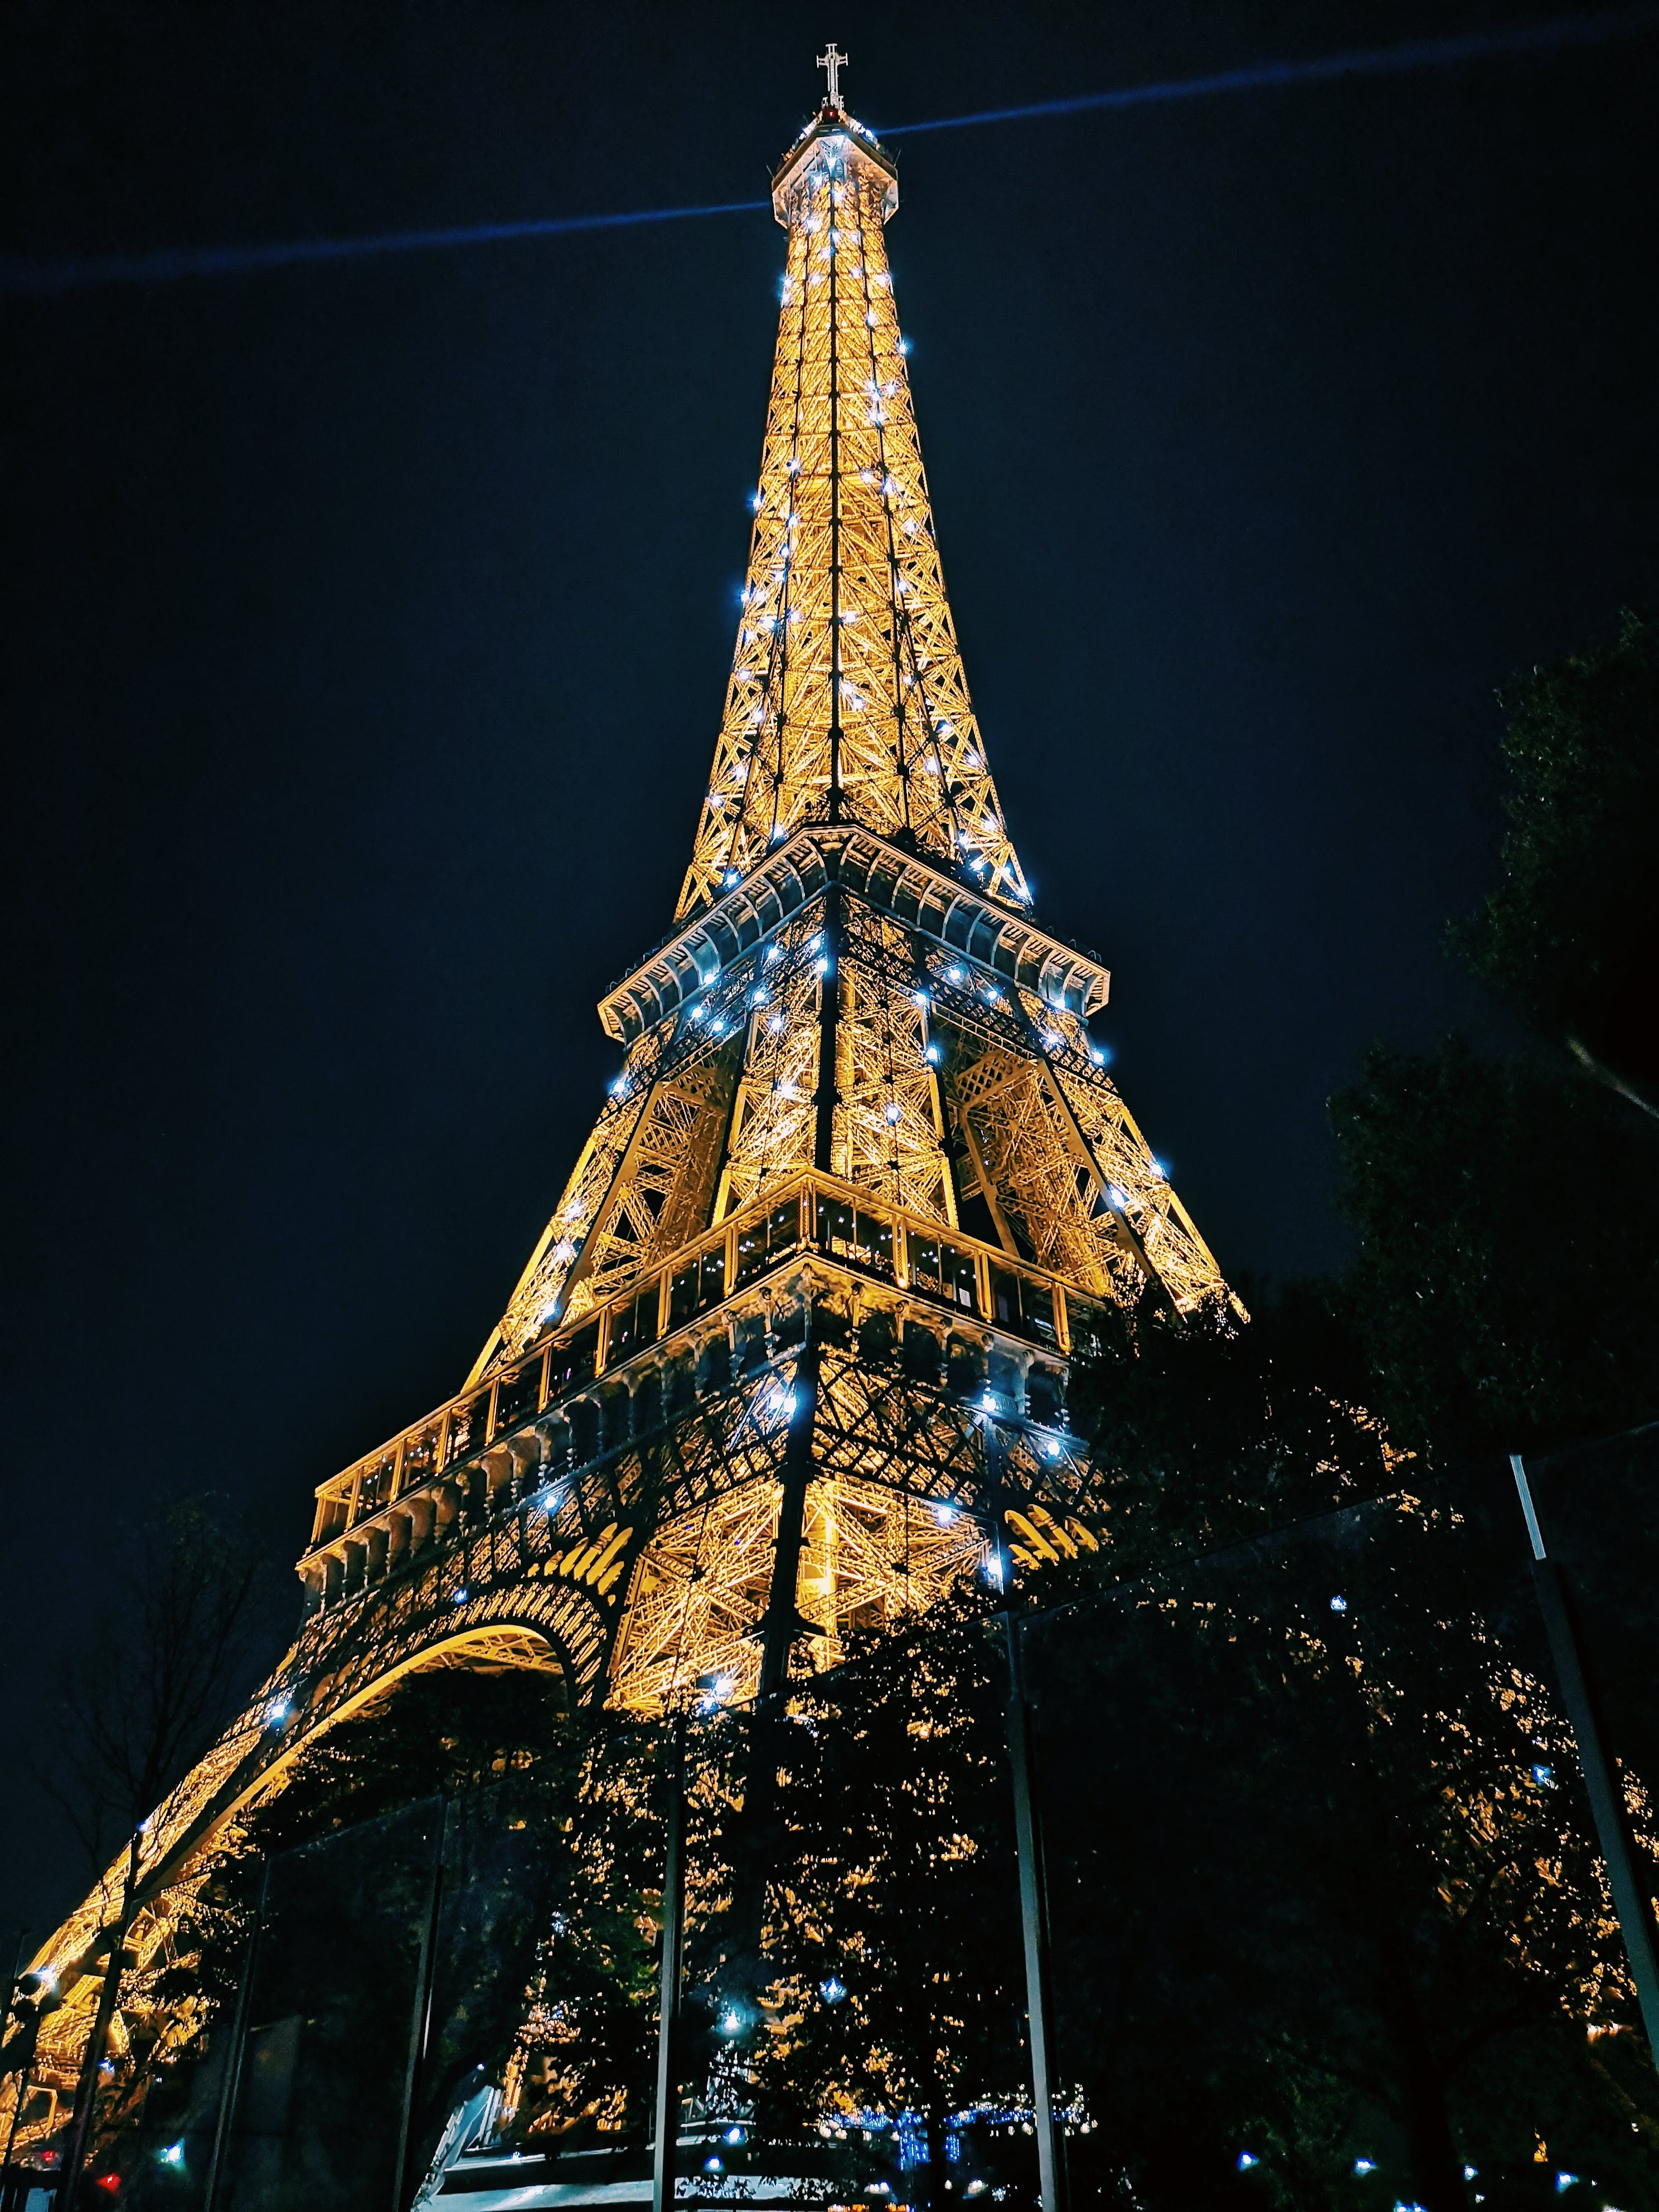 Eiffel Tower, Paris during Night Time